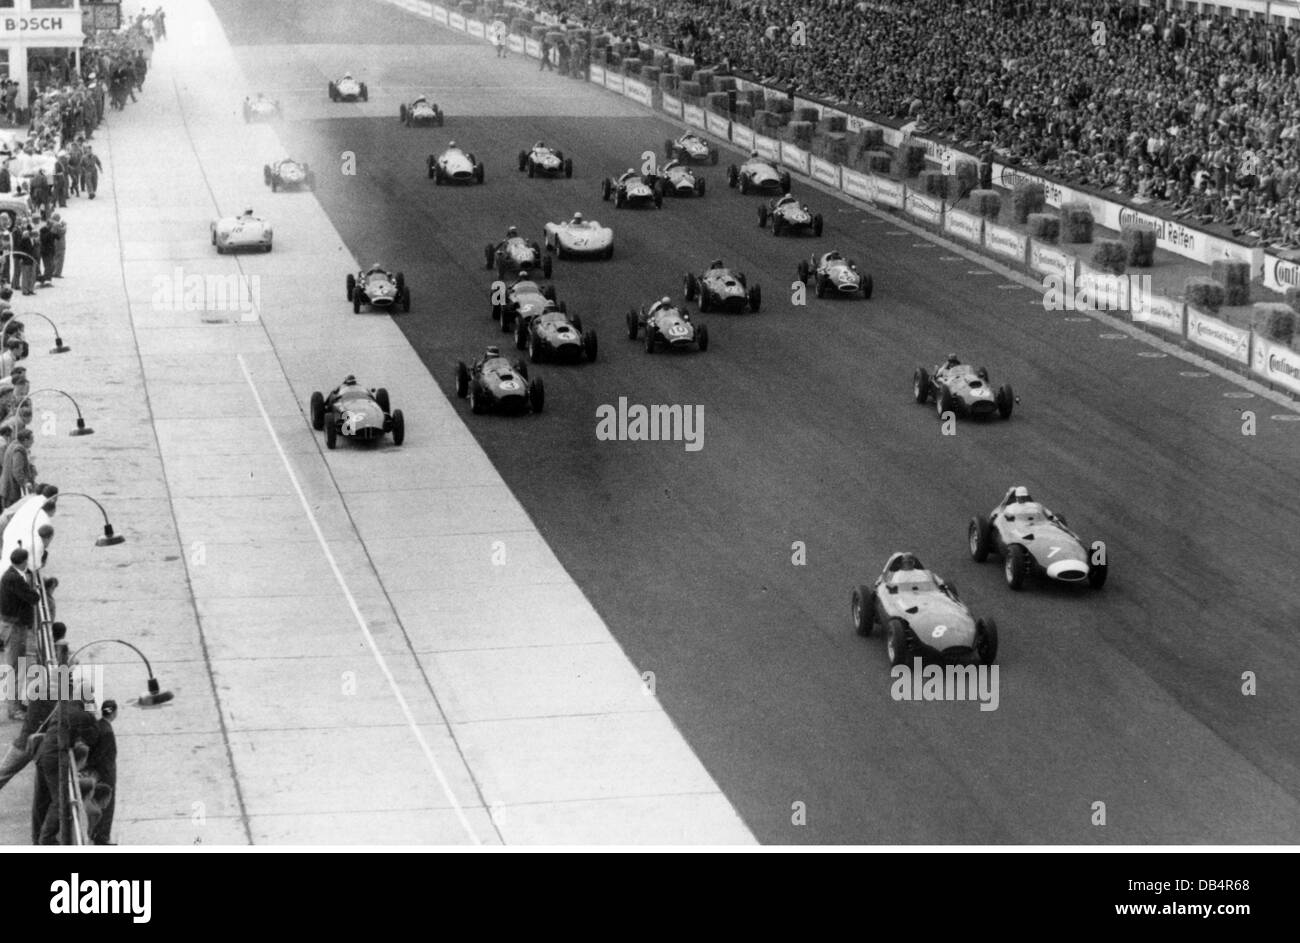 Sport, Car Racing, Start, Germany, 1950s, 50s, Cars, Circuit, Track,  Course, Starting, 20th Century, Historic, Historical, Peop